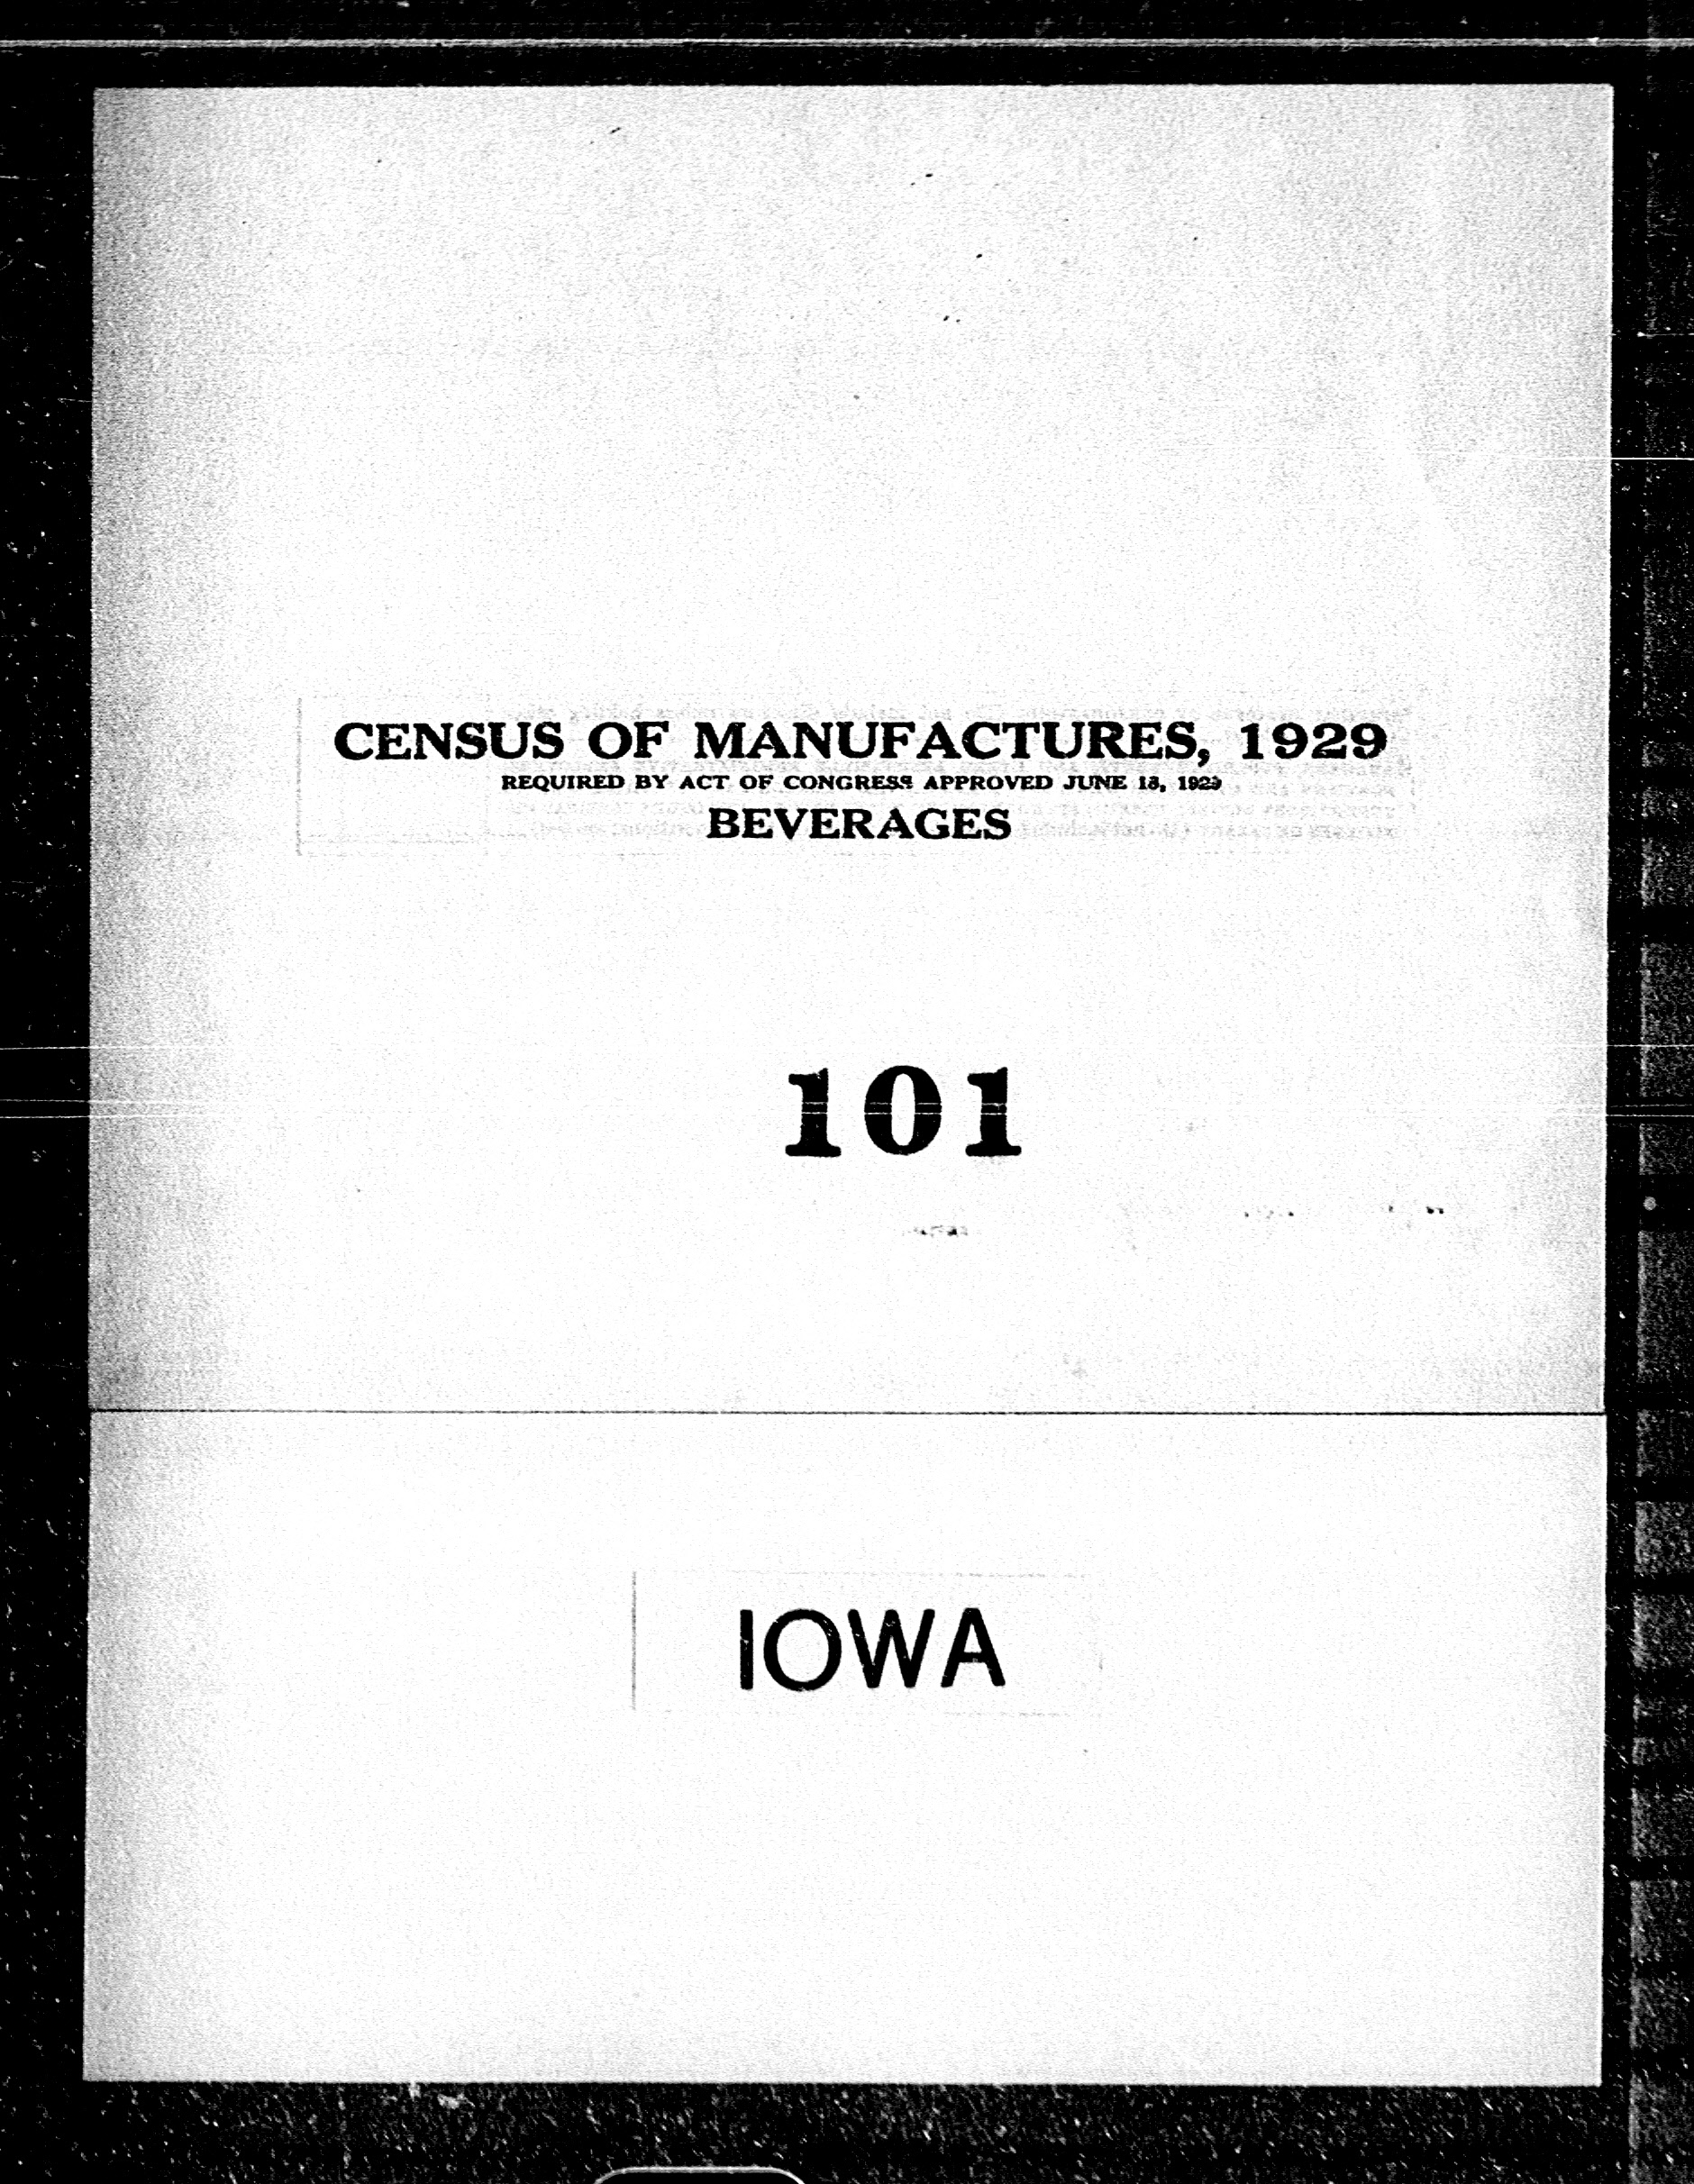 Iowa: Industry No. 101 - Beverages